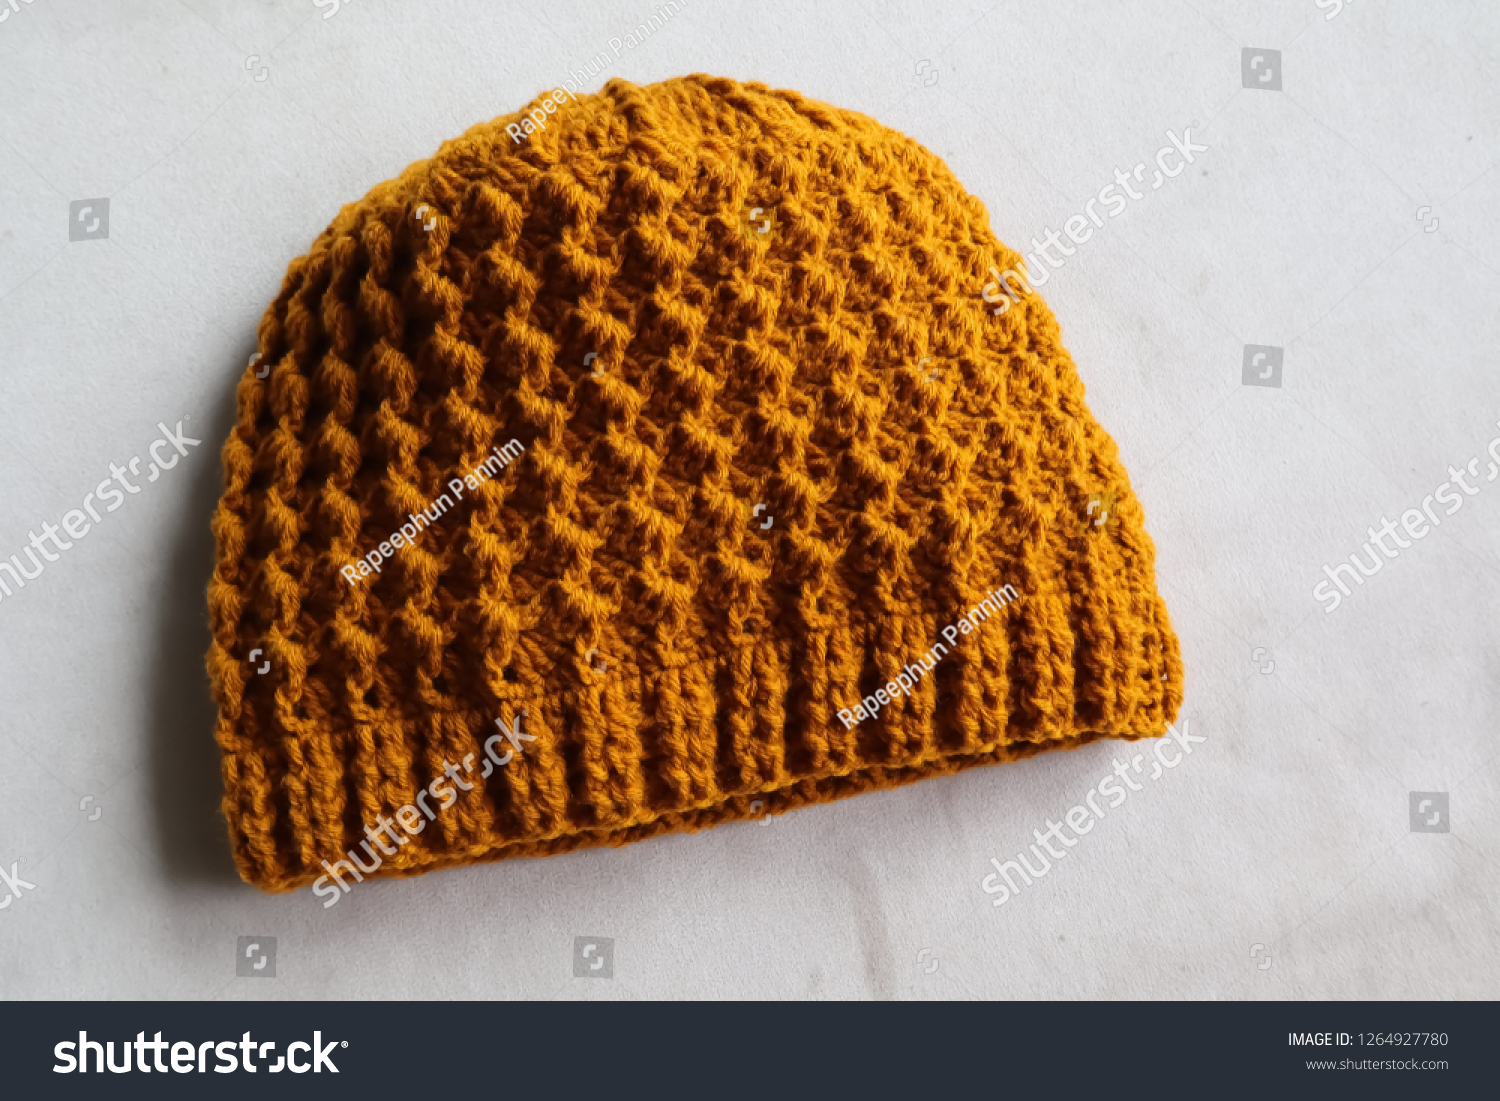 2adf4eb0 Crochet Hat On White Wood Background Stock Photo (Edit Now ...